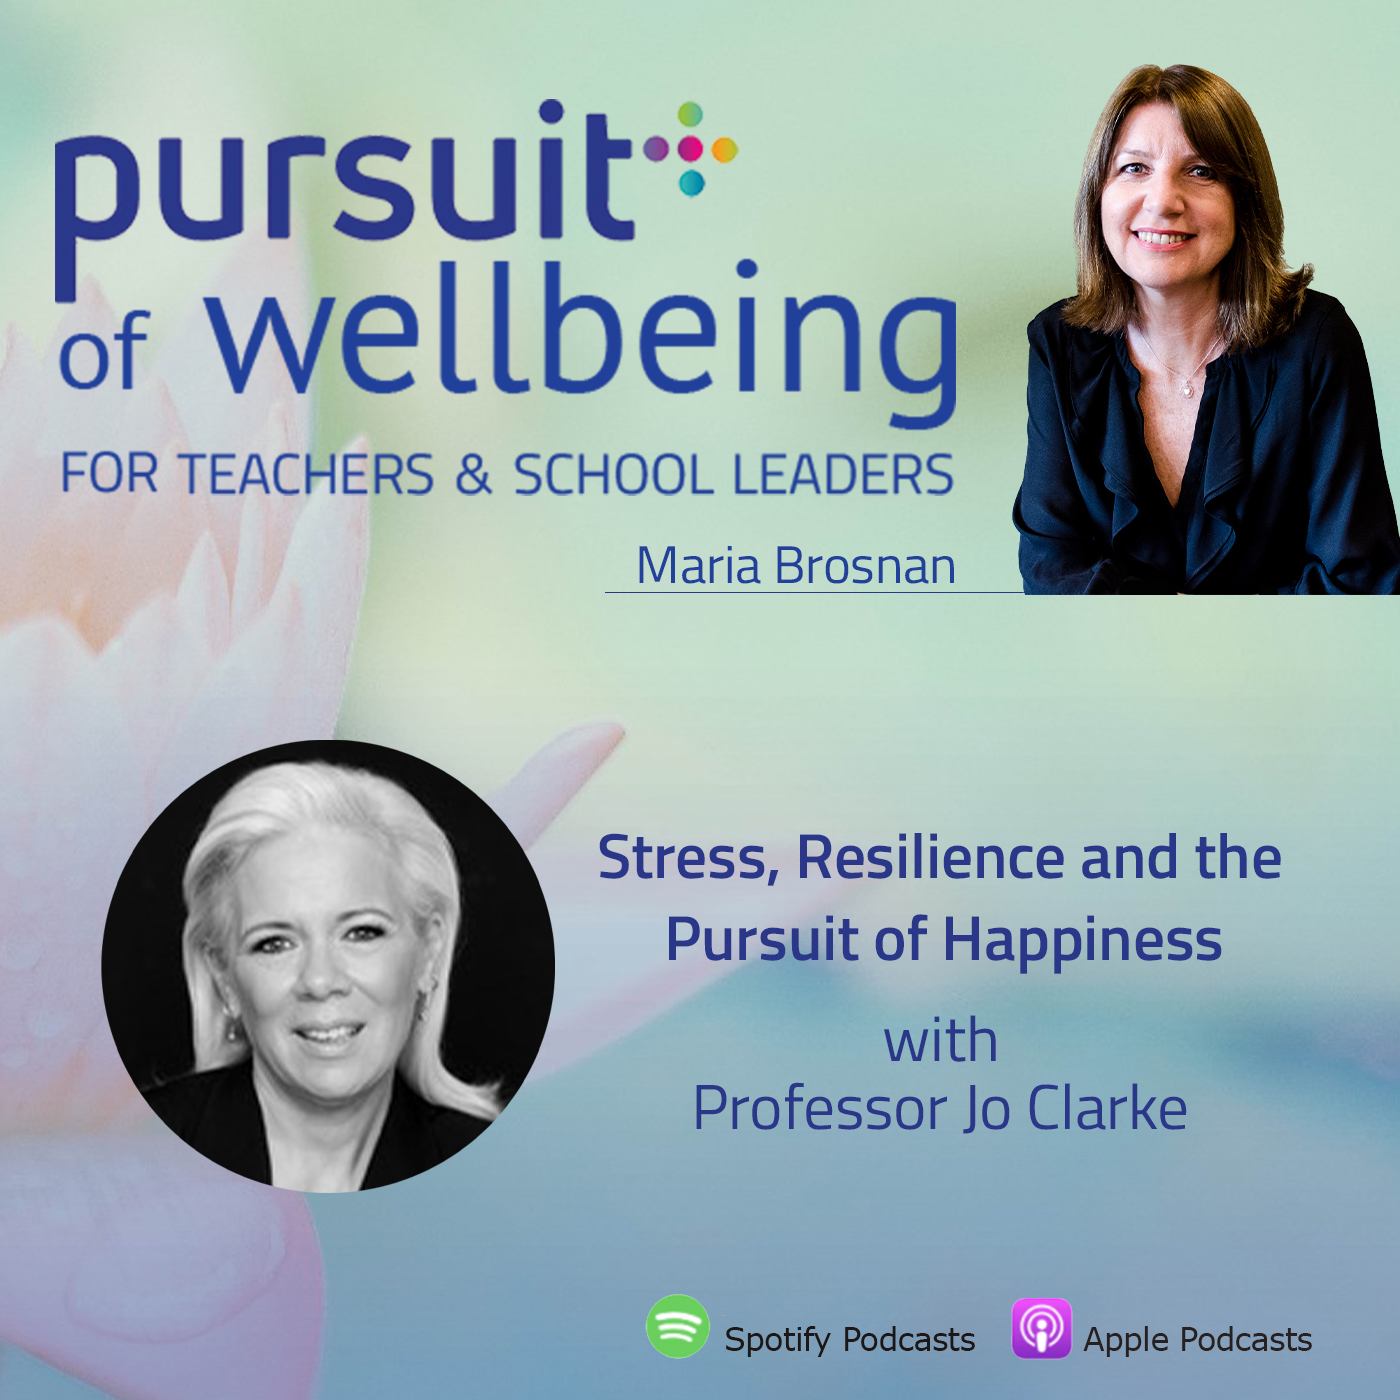 Stress, Resilience and the Pursuit of Happiness with Professor Jo Clarke.